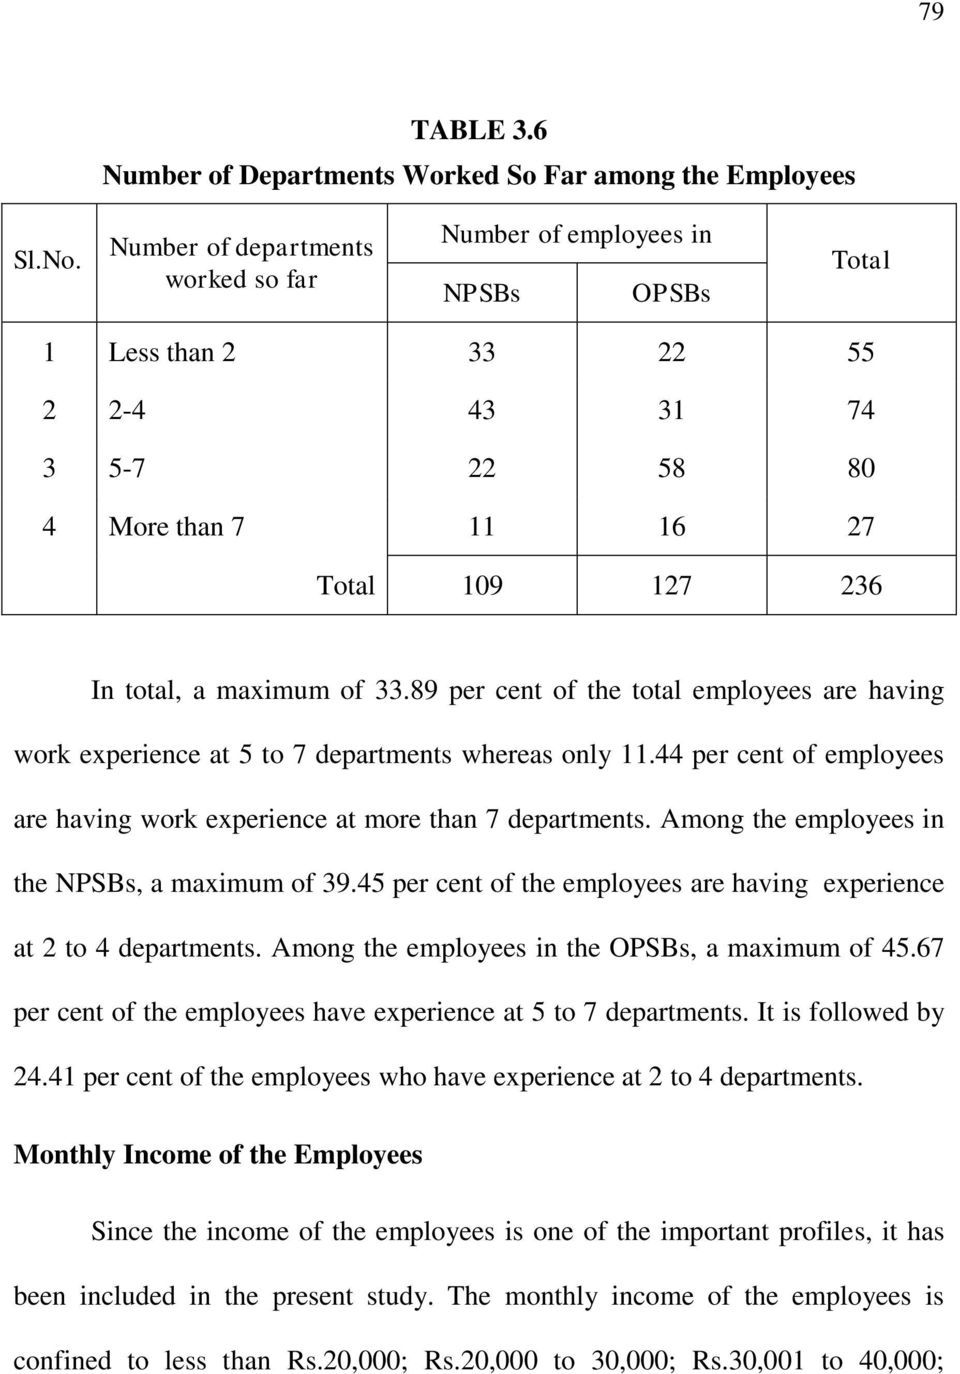 89 per cent of the total employees are having work experience at 5 to 7 departments whereas only 11.44 per cent of employees are having work experience at more than 7 departments.